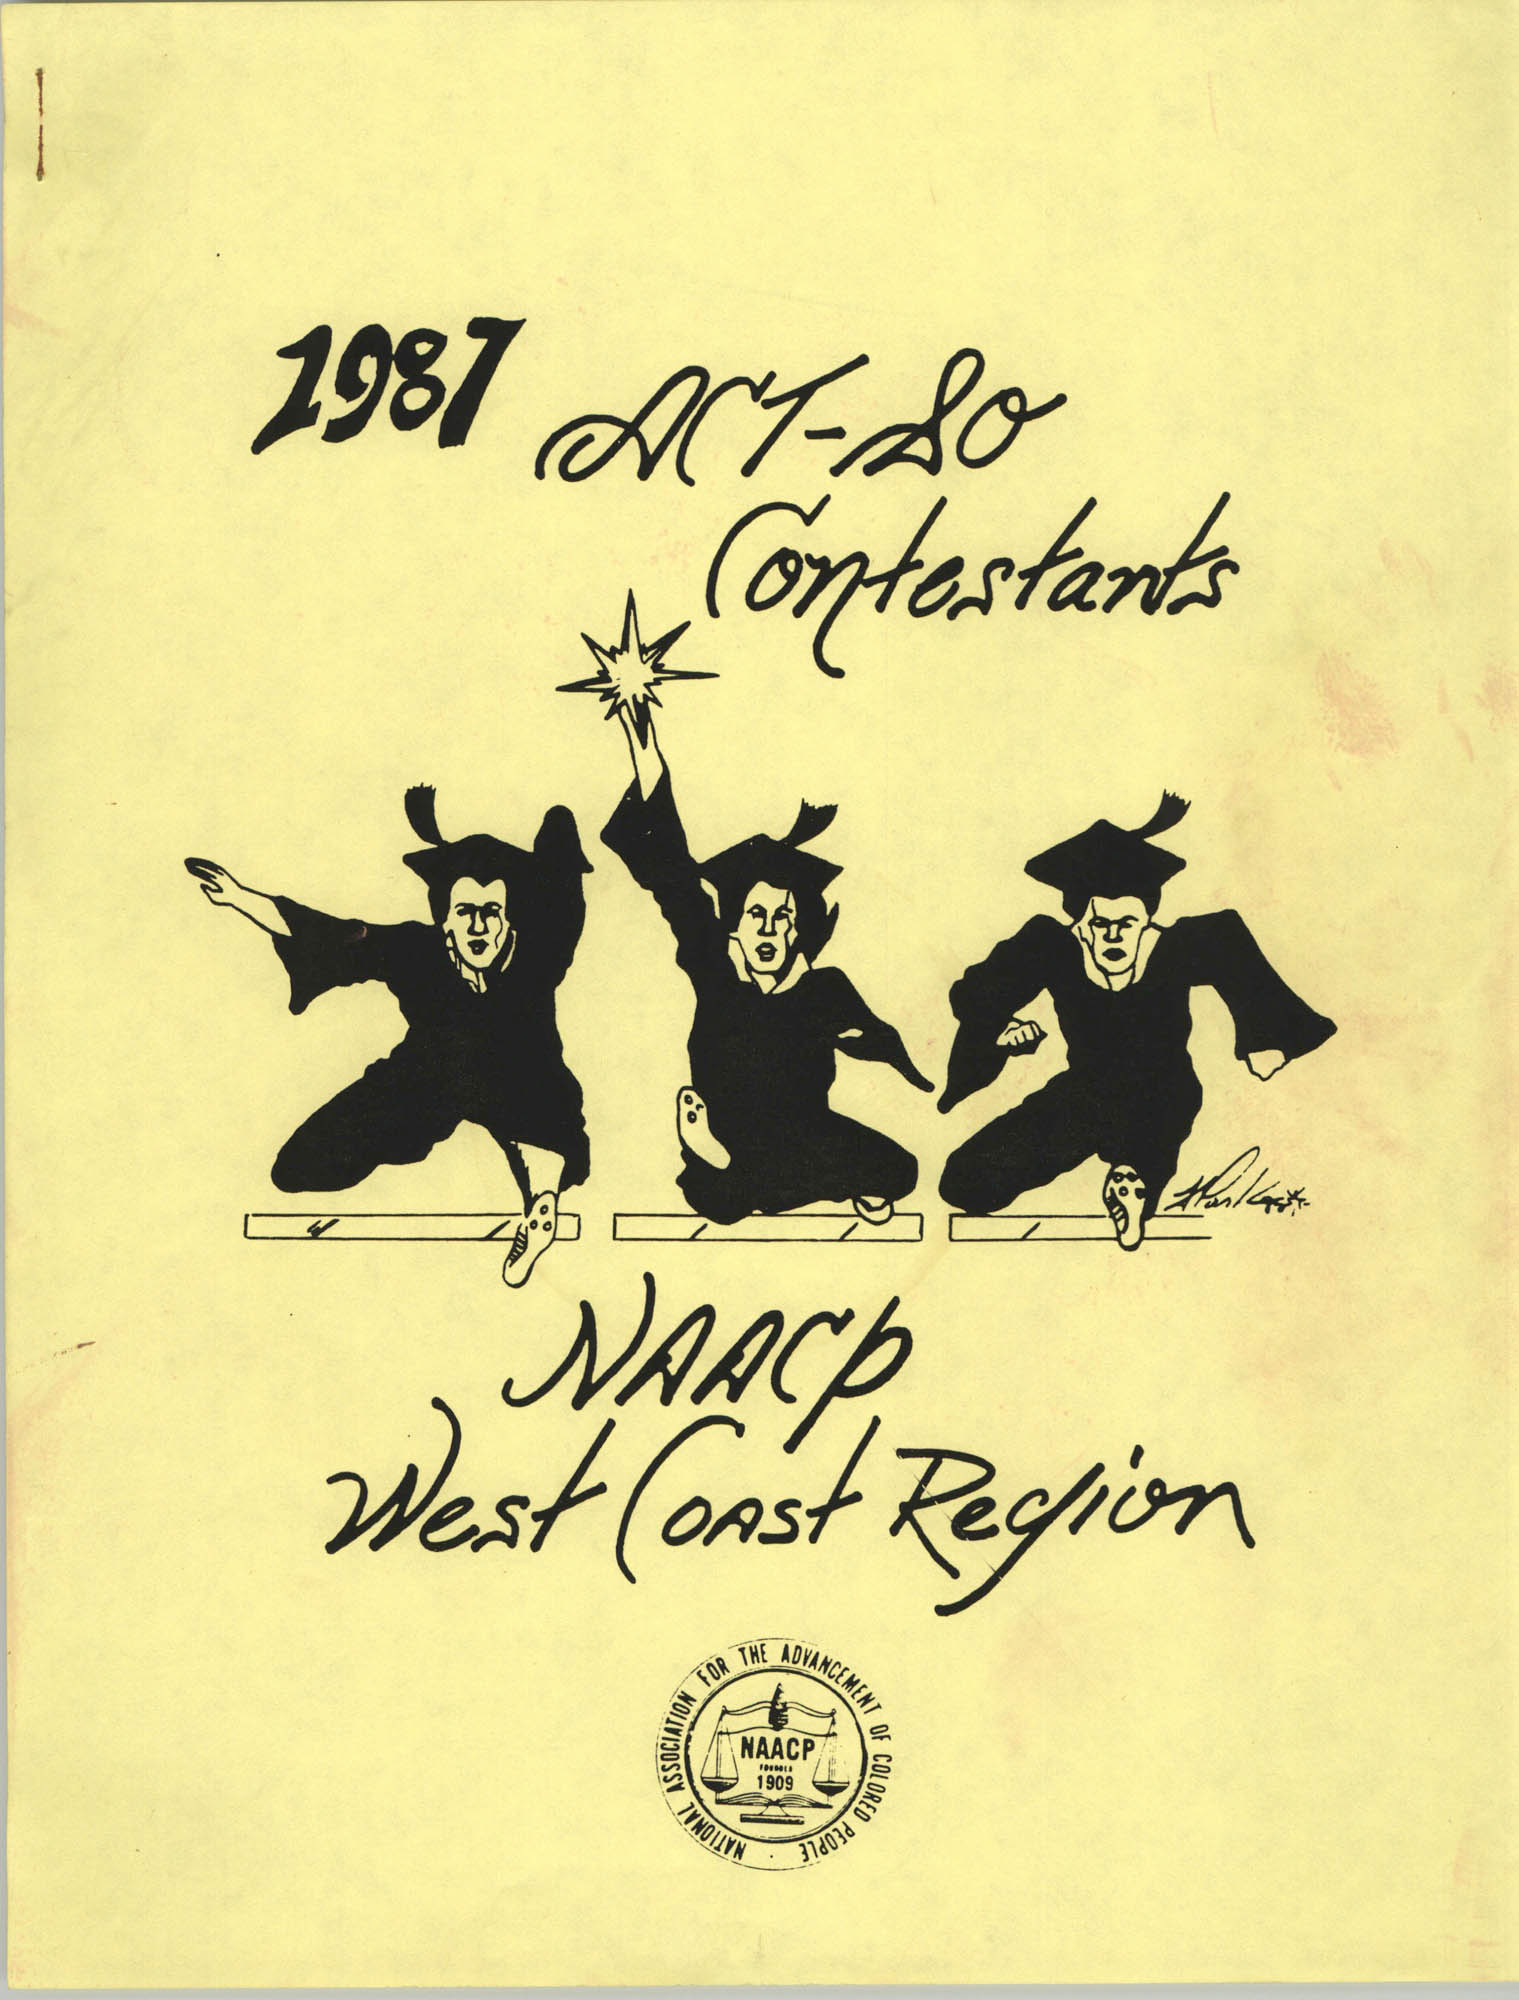 1987 Act-So Contestants, NAACP West Coast Region